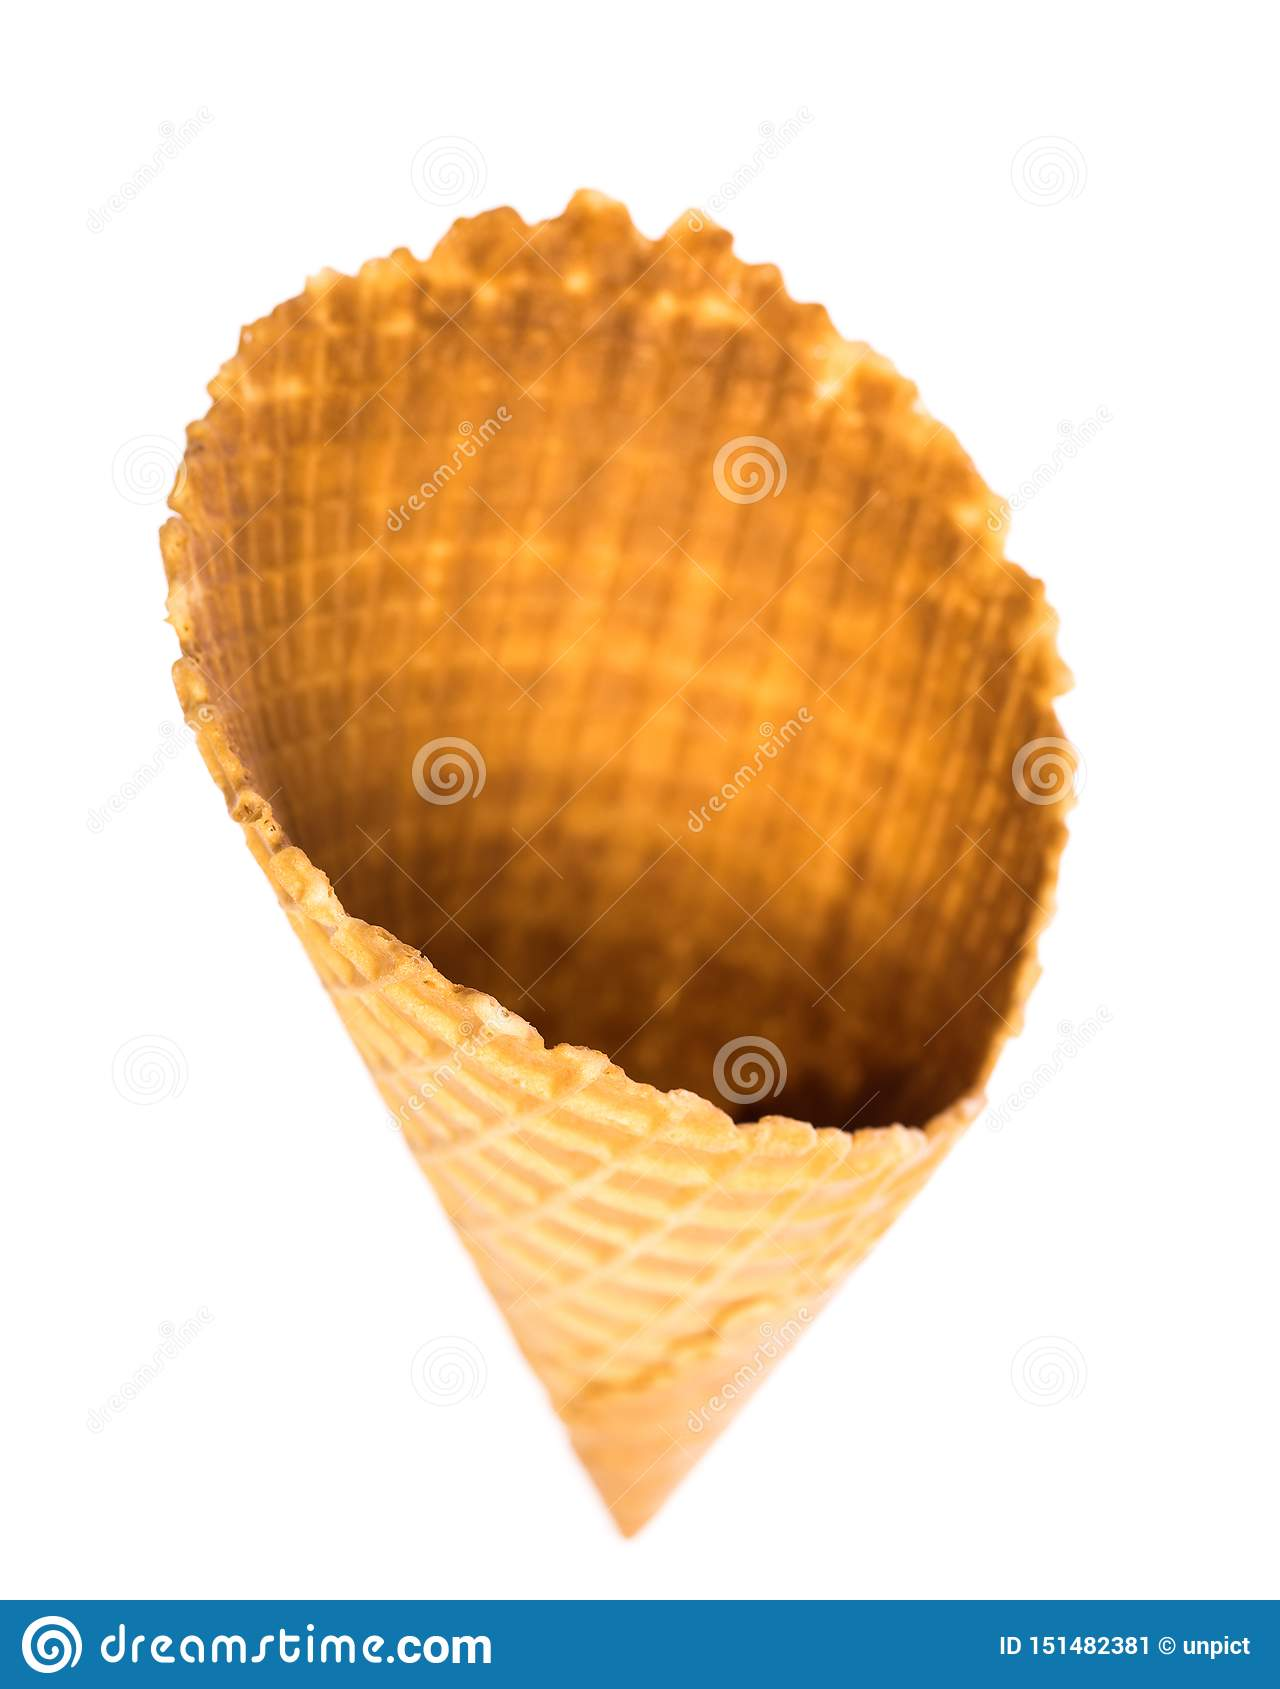 Top view of empty edible ice cream cone isolated on white background